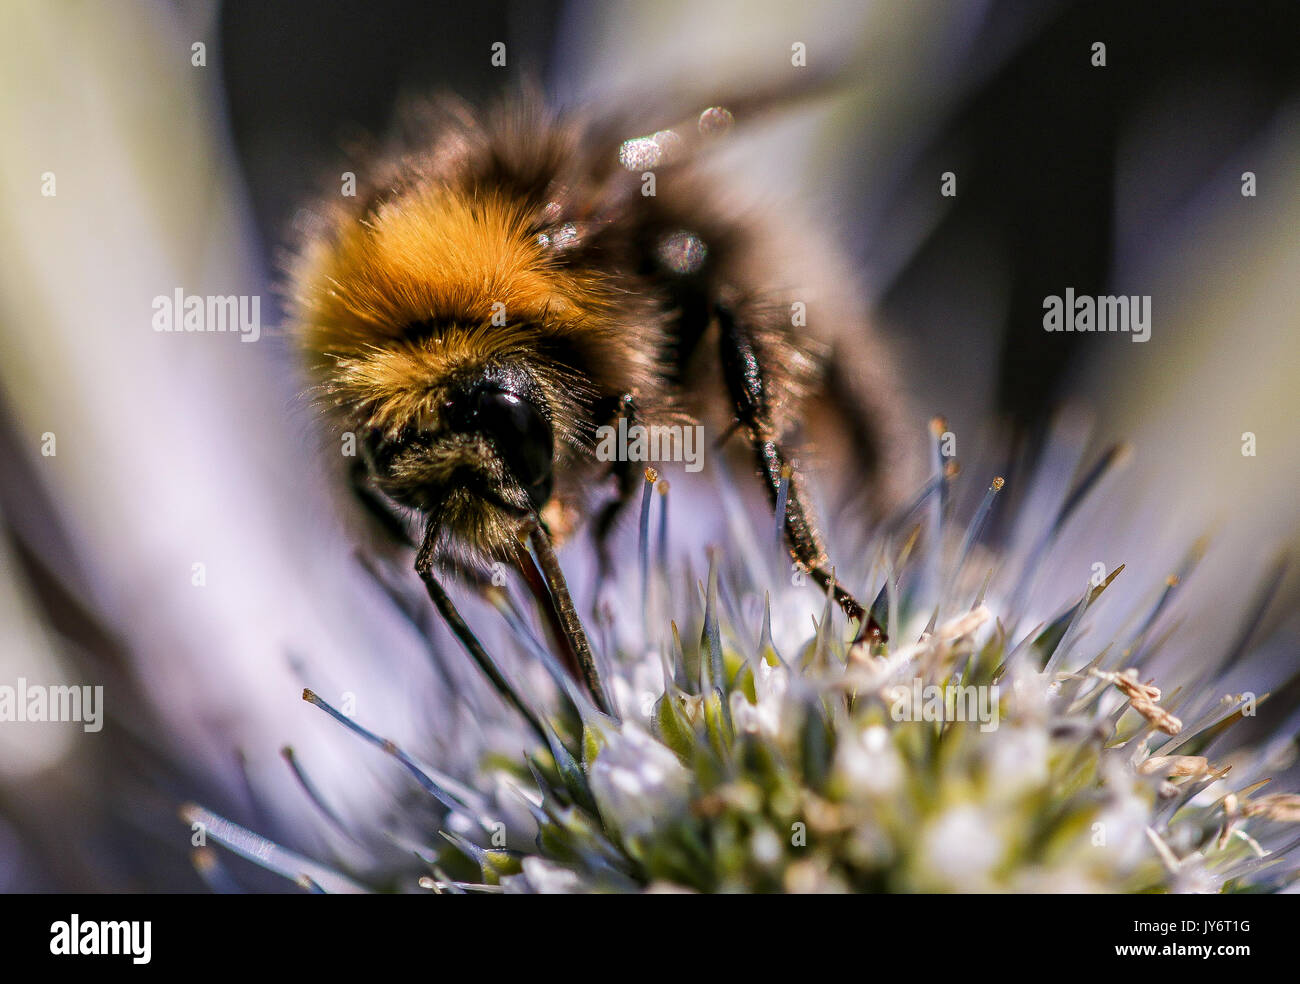 A close up of Honey Bee getting pollen from Eryngium flower head, Shepperton, Surrey, England U.K. - Stock Image